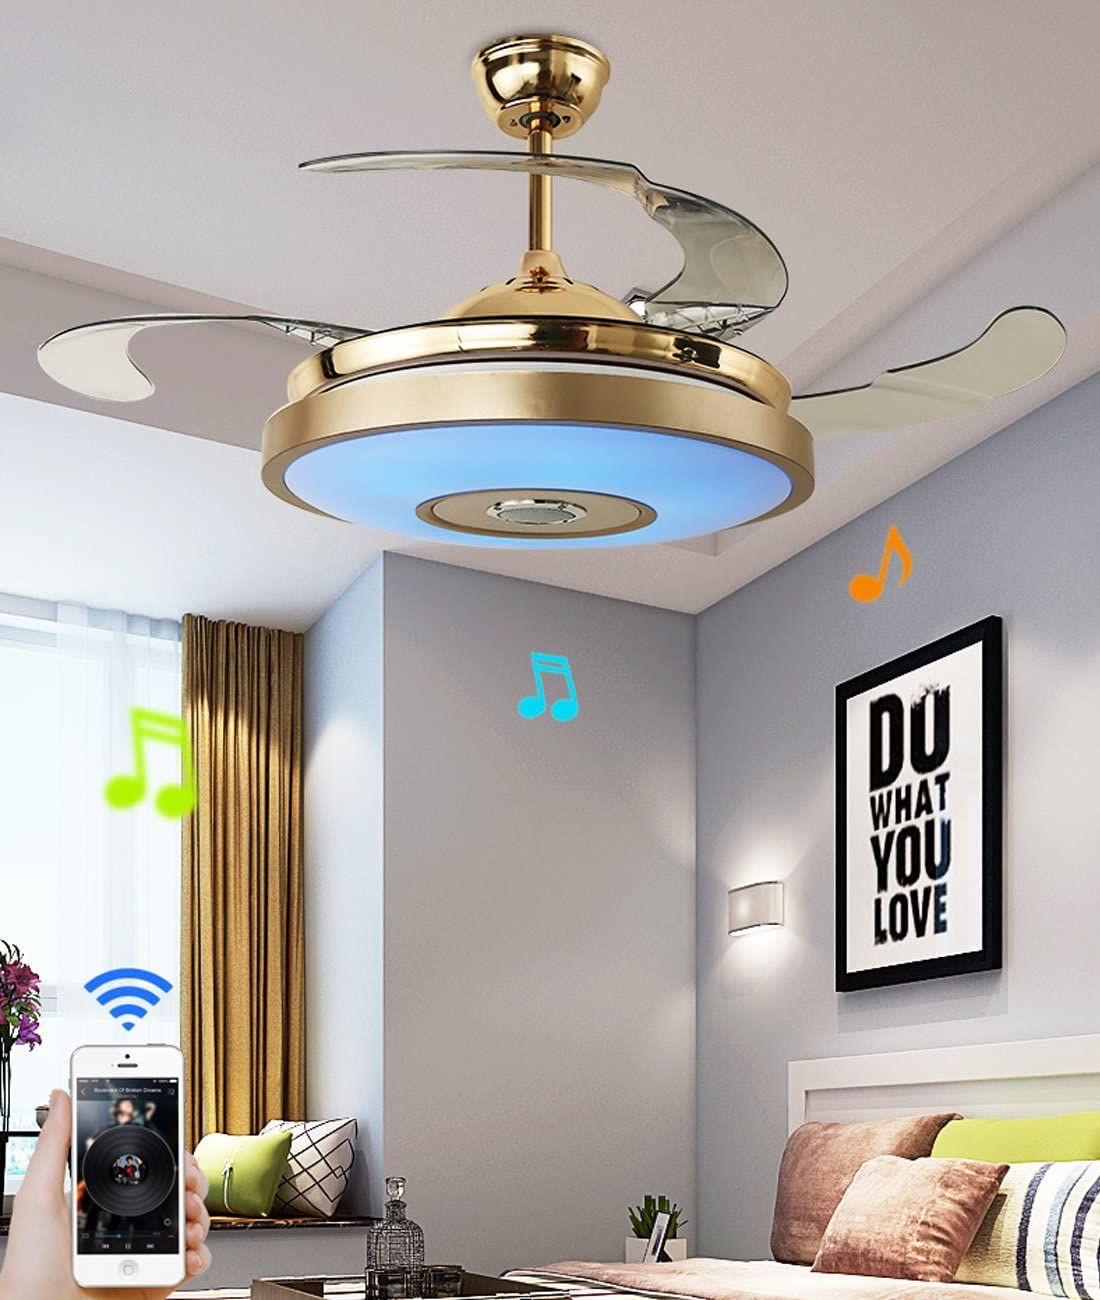 36 inch Ceiling Fan Light with Bluetooth Speaker and Remote Control Modern 3-color Dimming Chandelier Mute Ceiling Fans with Lights fit for Bedroom Dining//Living Room 36 inch-B